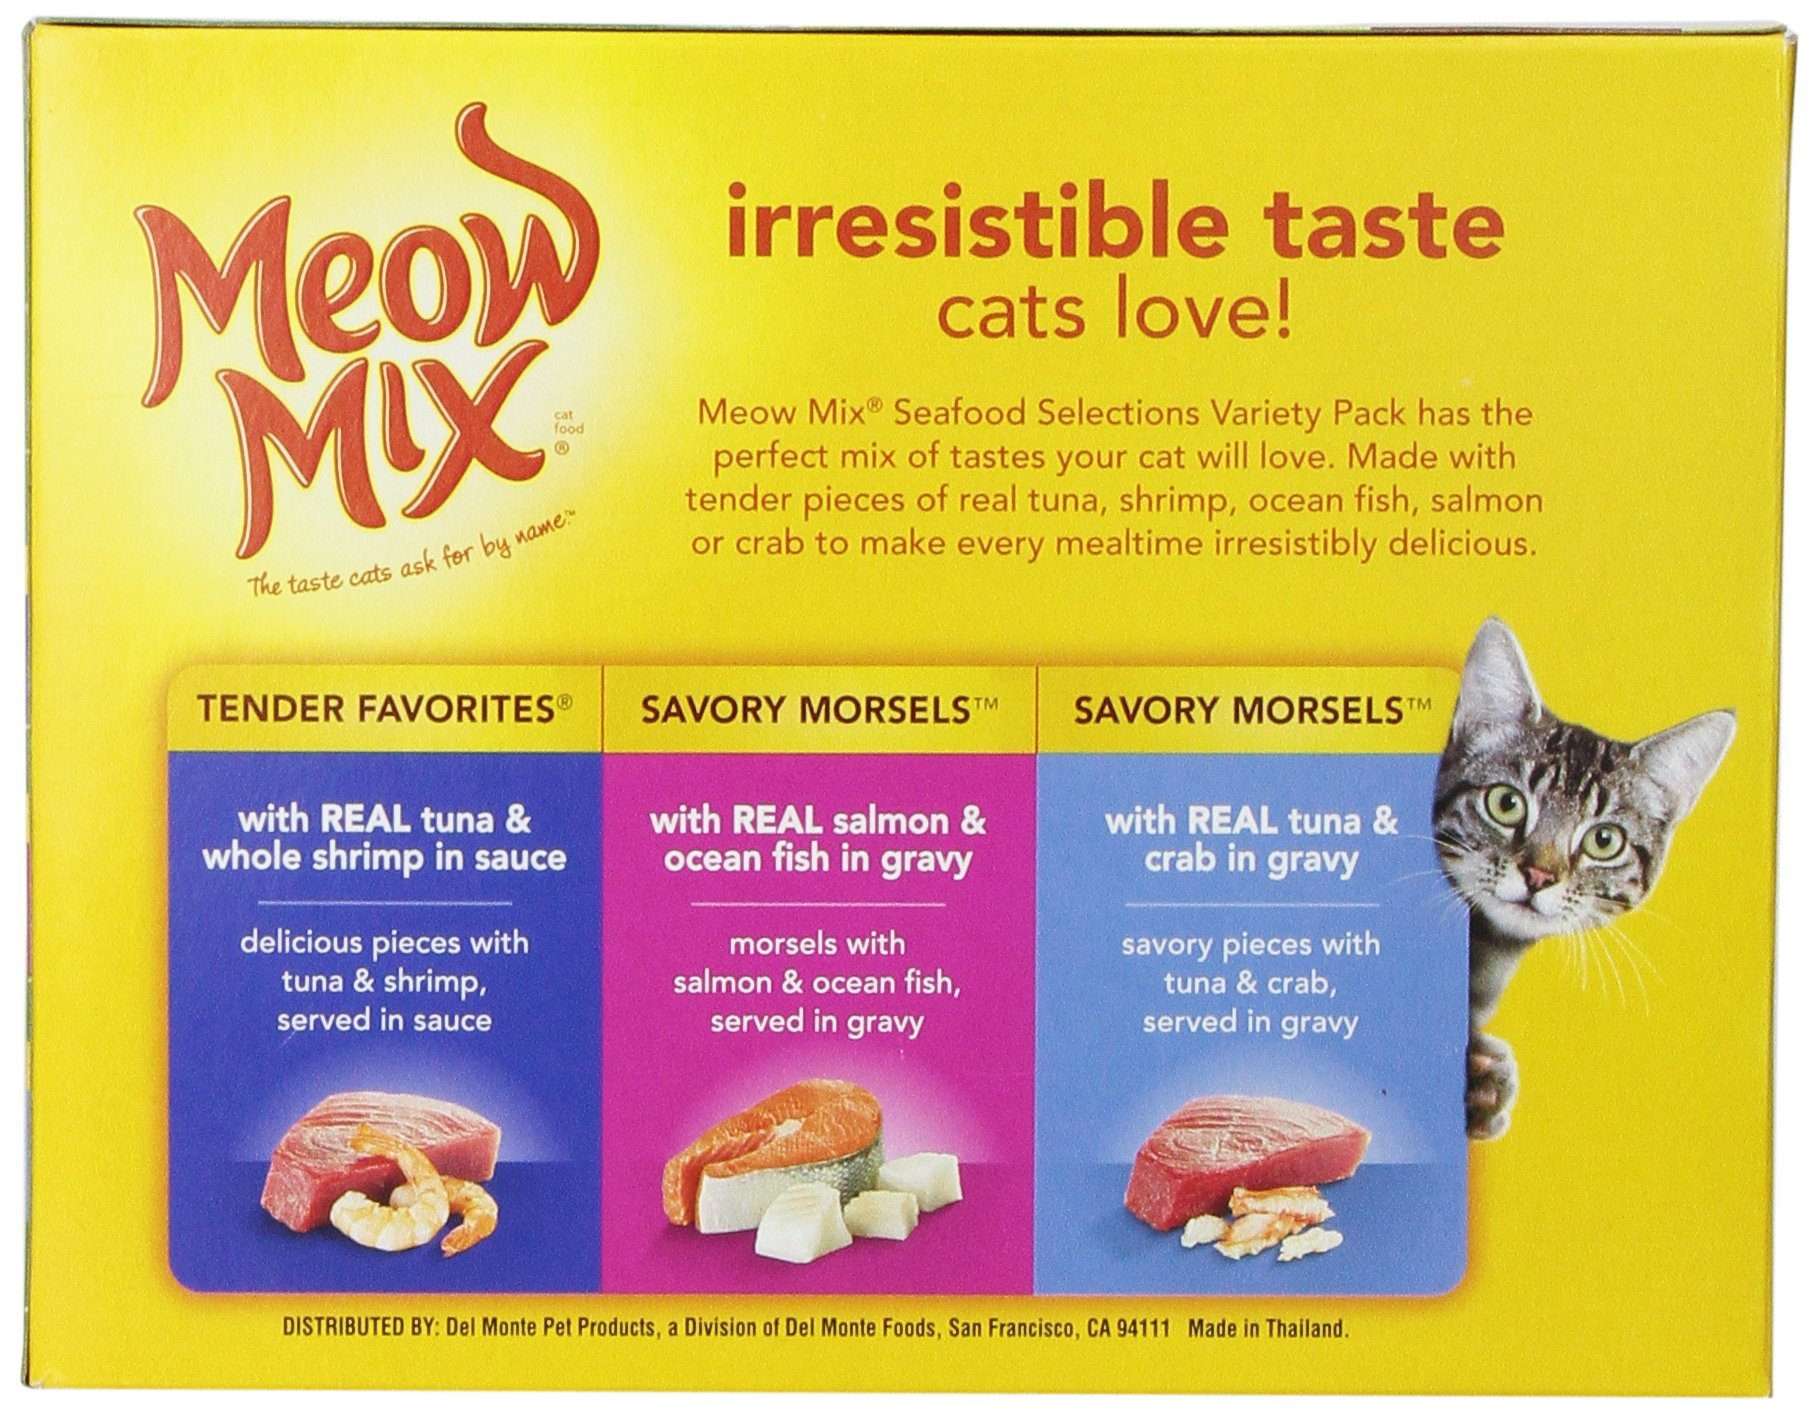 Meow Mix Seafood Selections Variety Pack Wet Cat Food, 2.75-Ounce (pack of 24) by Meow Mix (Image #4)